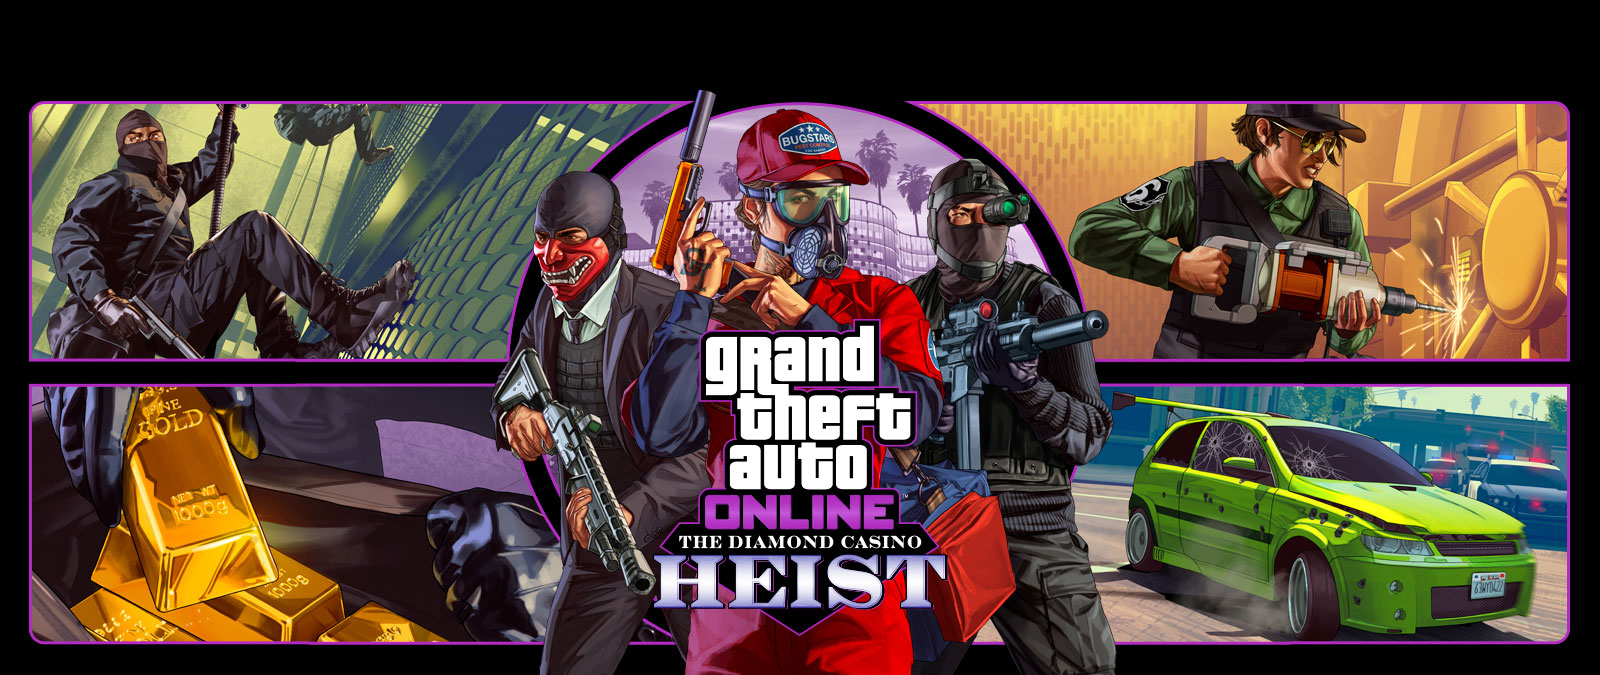 Grand Theft Auto Online, The Diamond Casino Heist